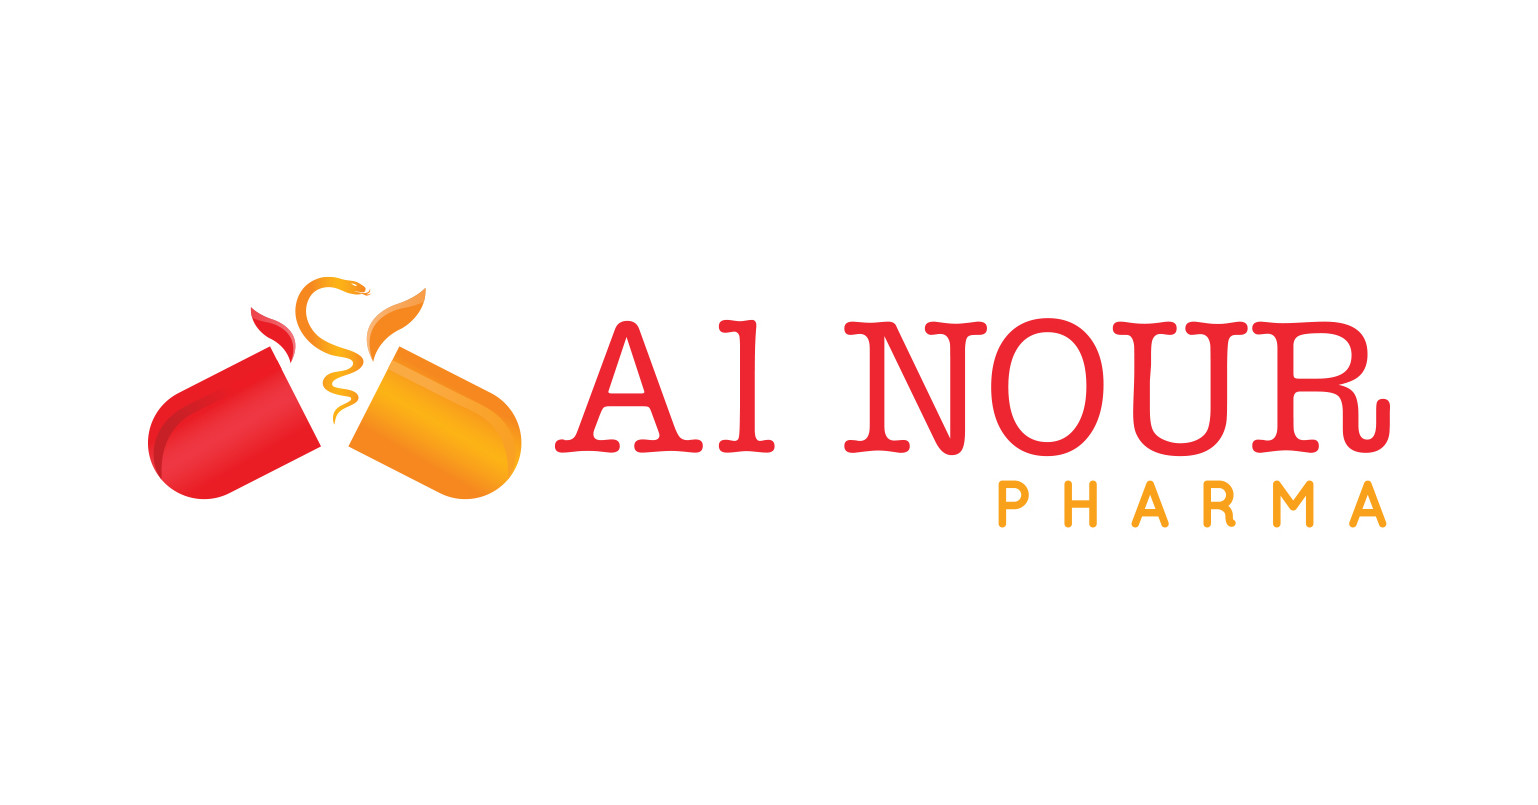 Job: Medical Sales Representative at Al nour pharma in Cairo, Egypt